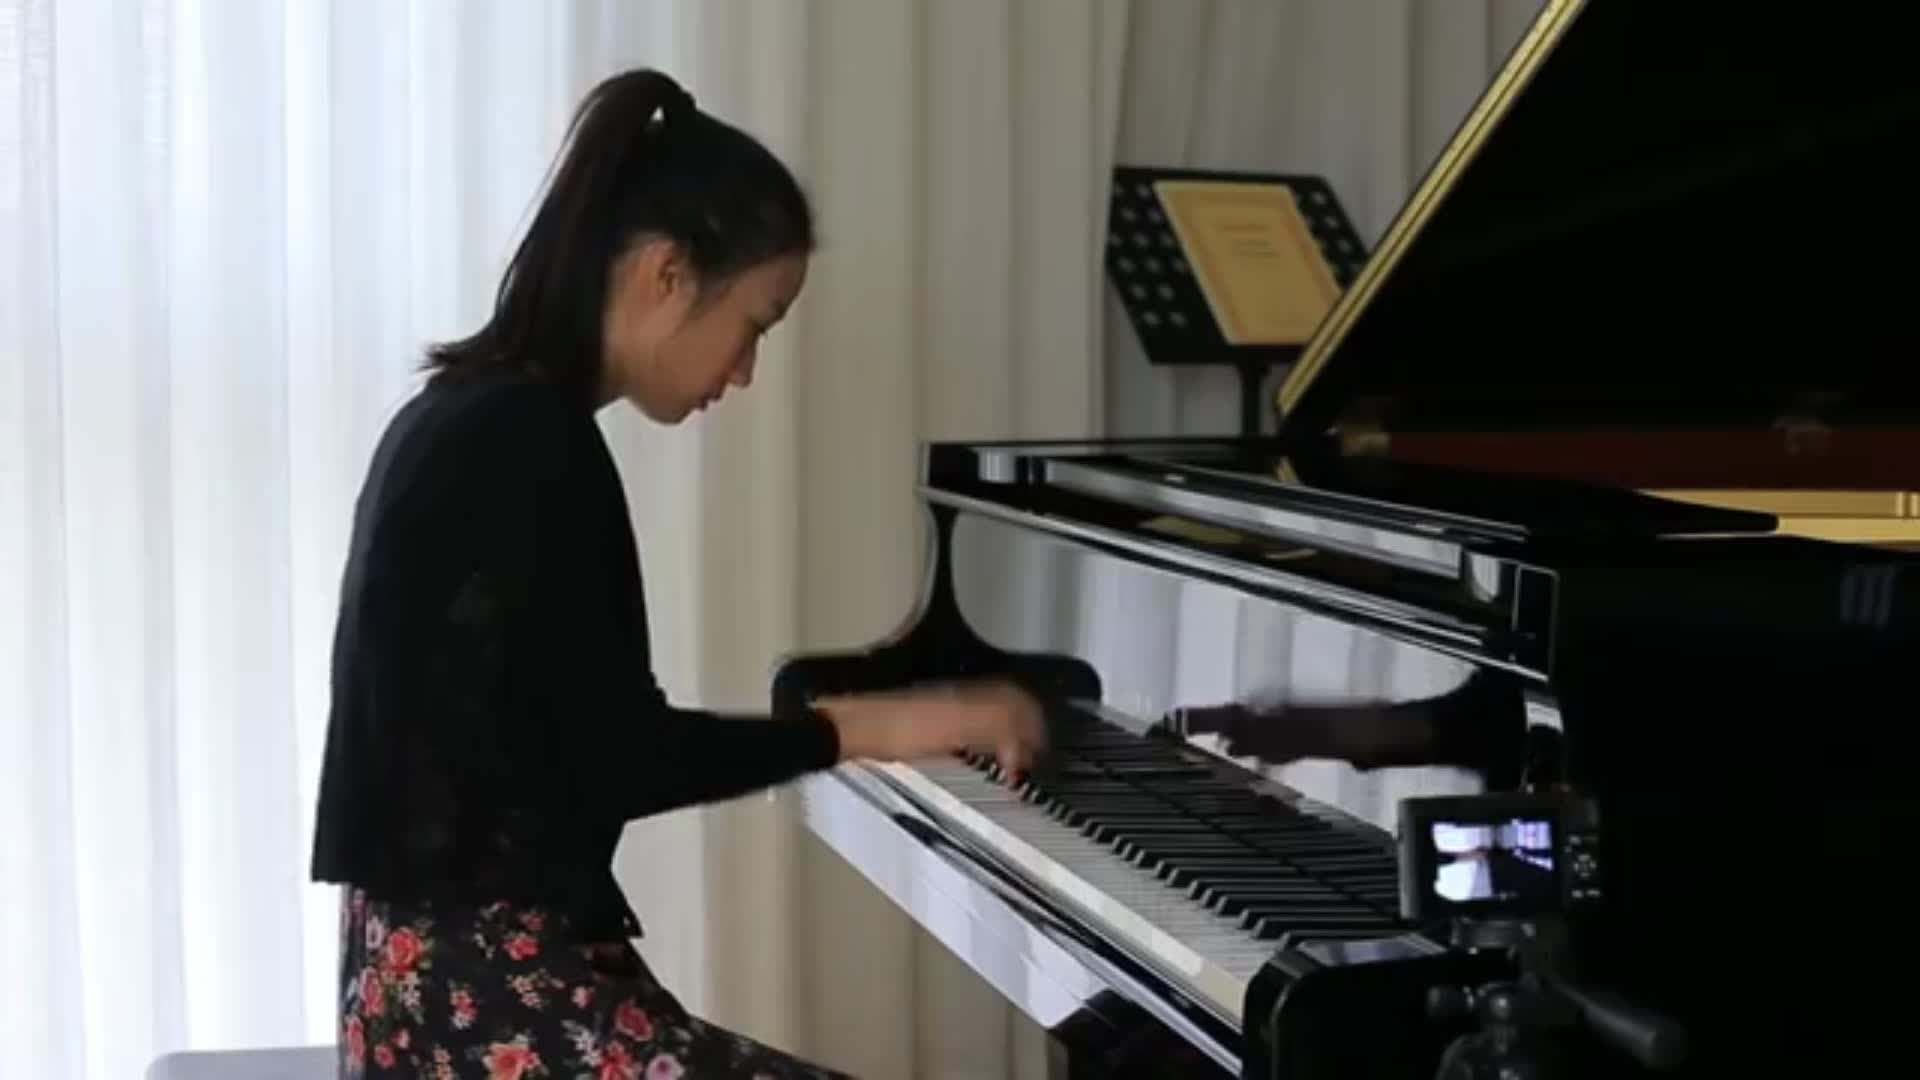 Havana sheet music for Piano - Download free in PDF or MP3 - Christian  Music Videos